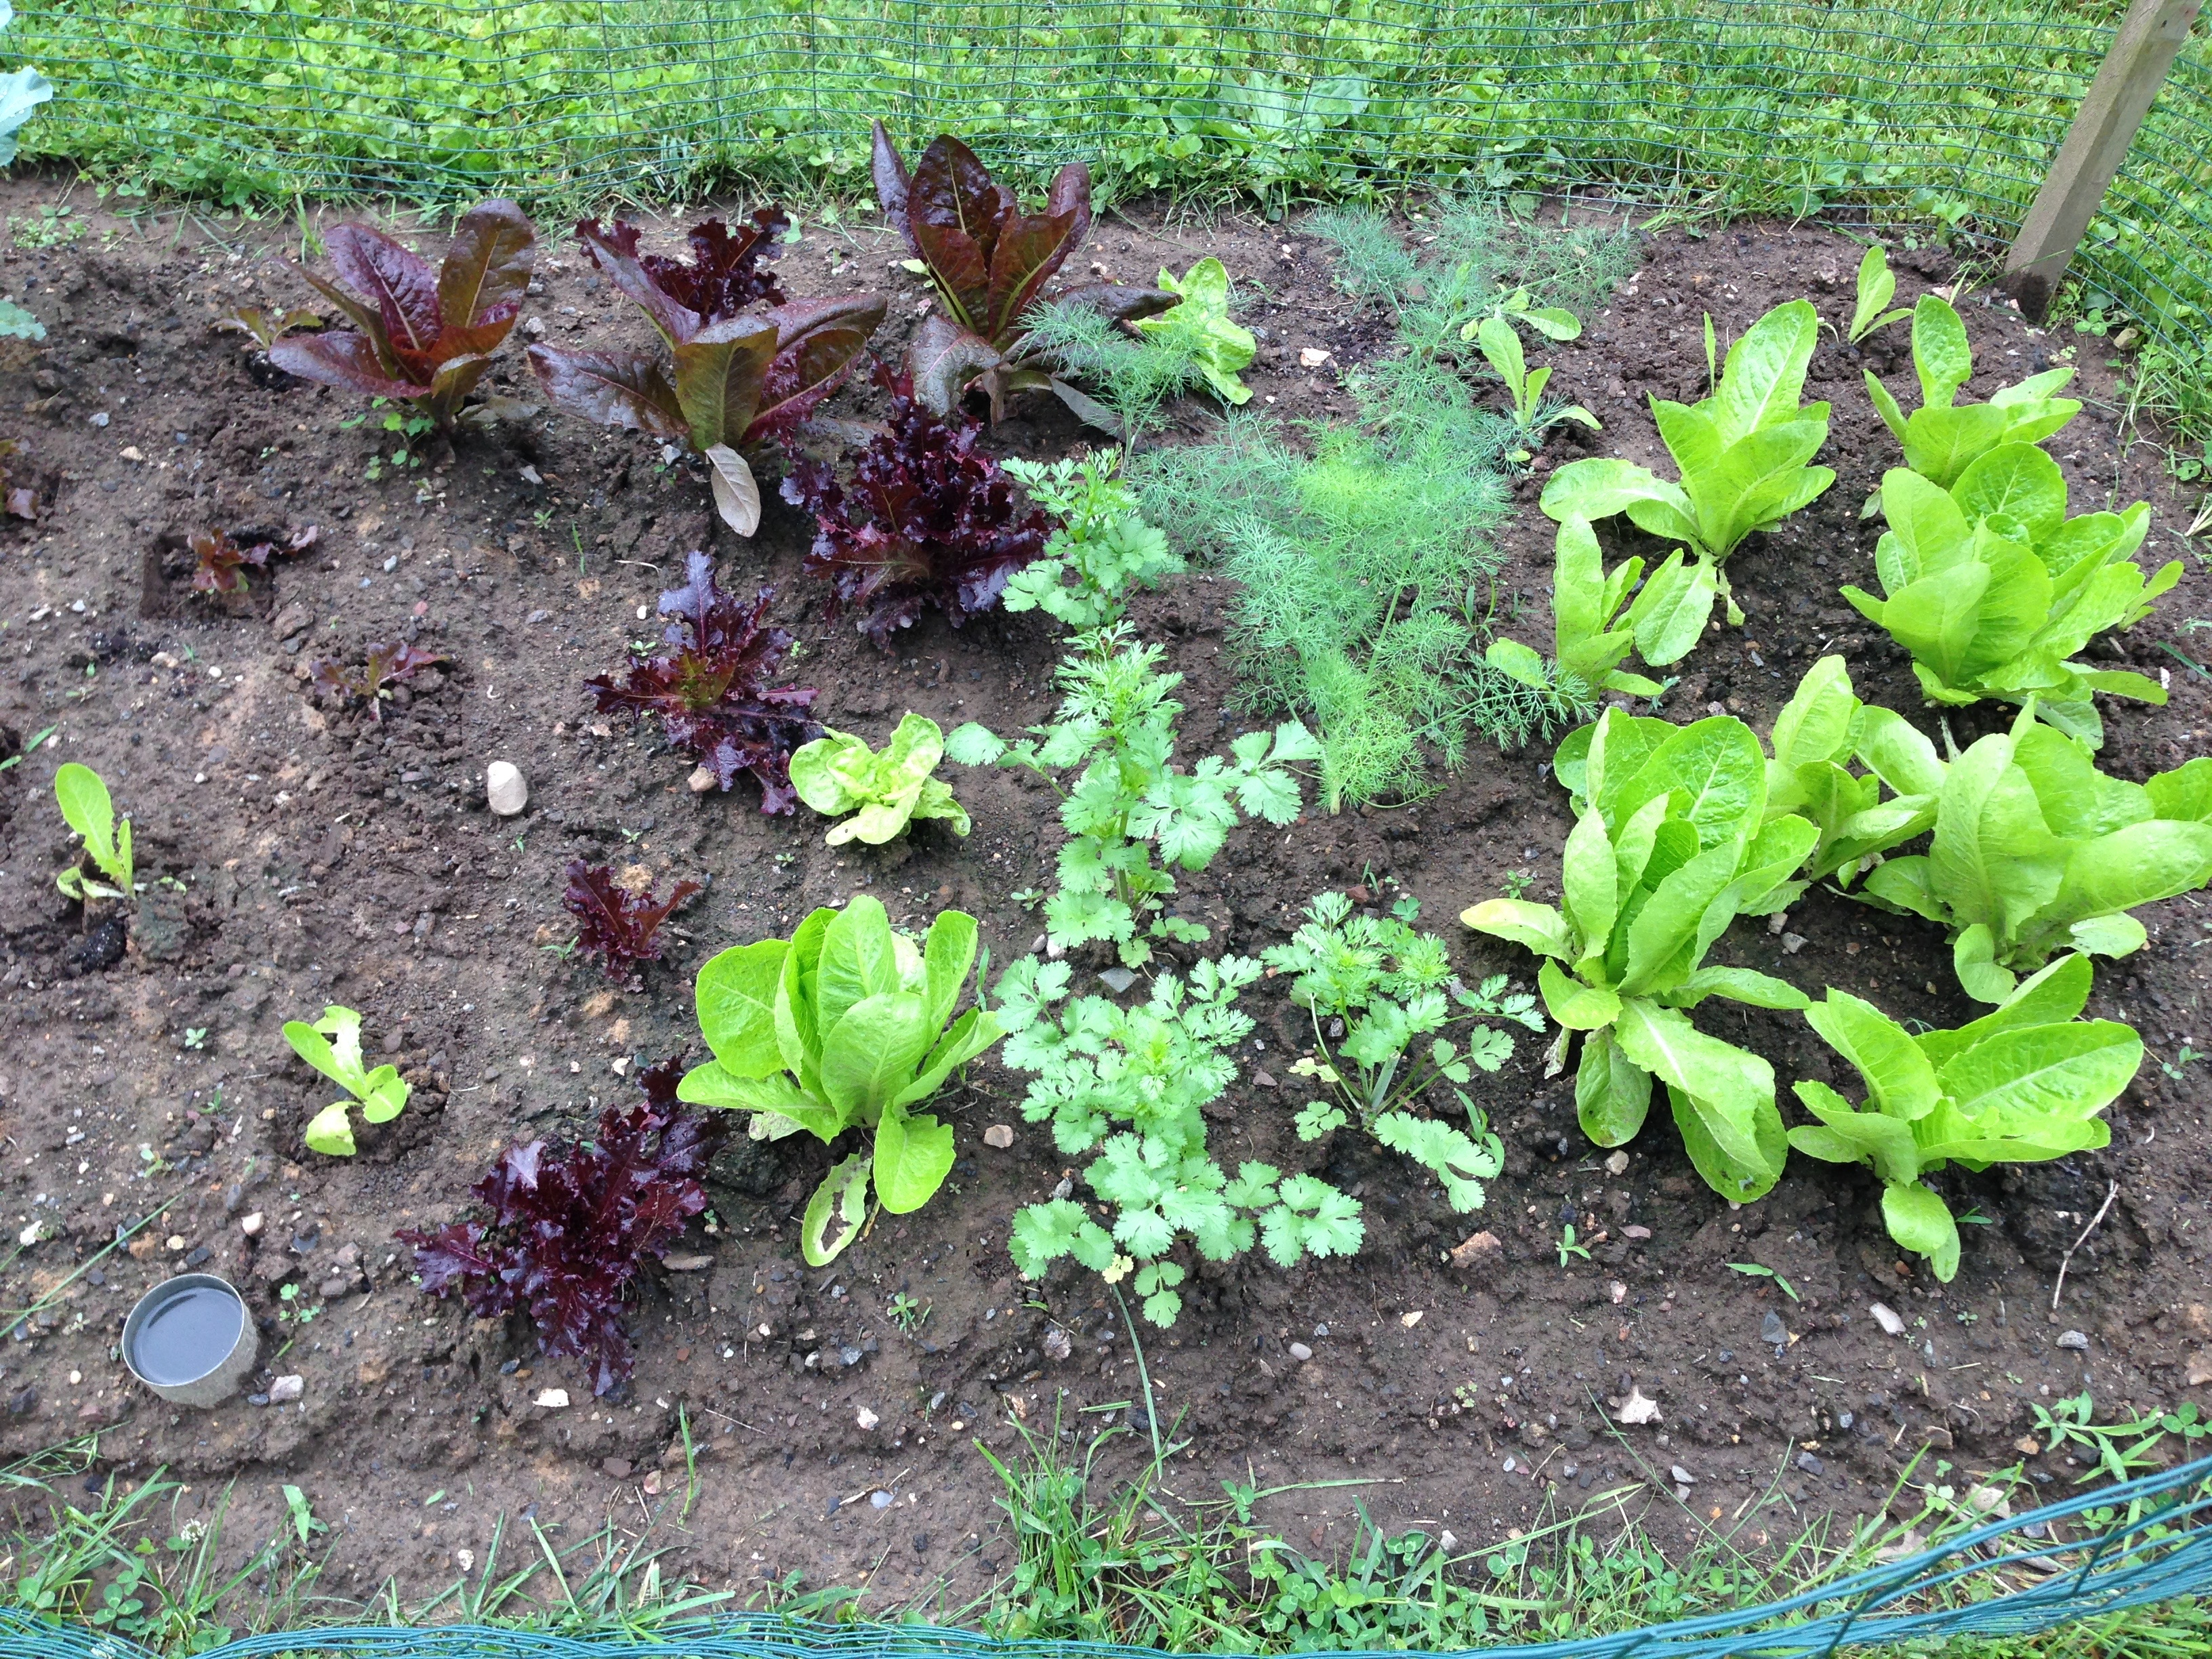 Lettuce and Herbs